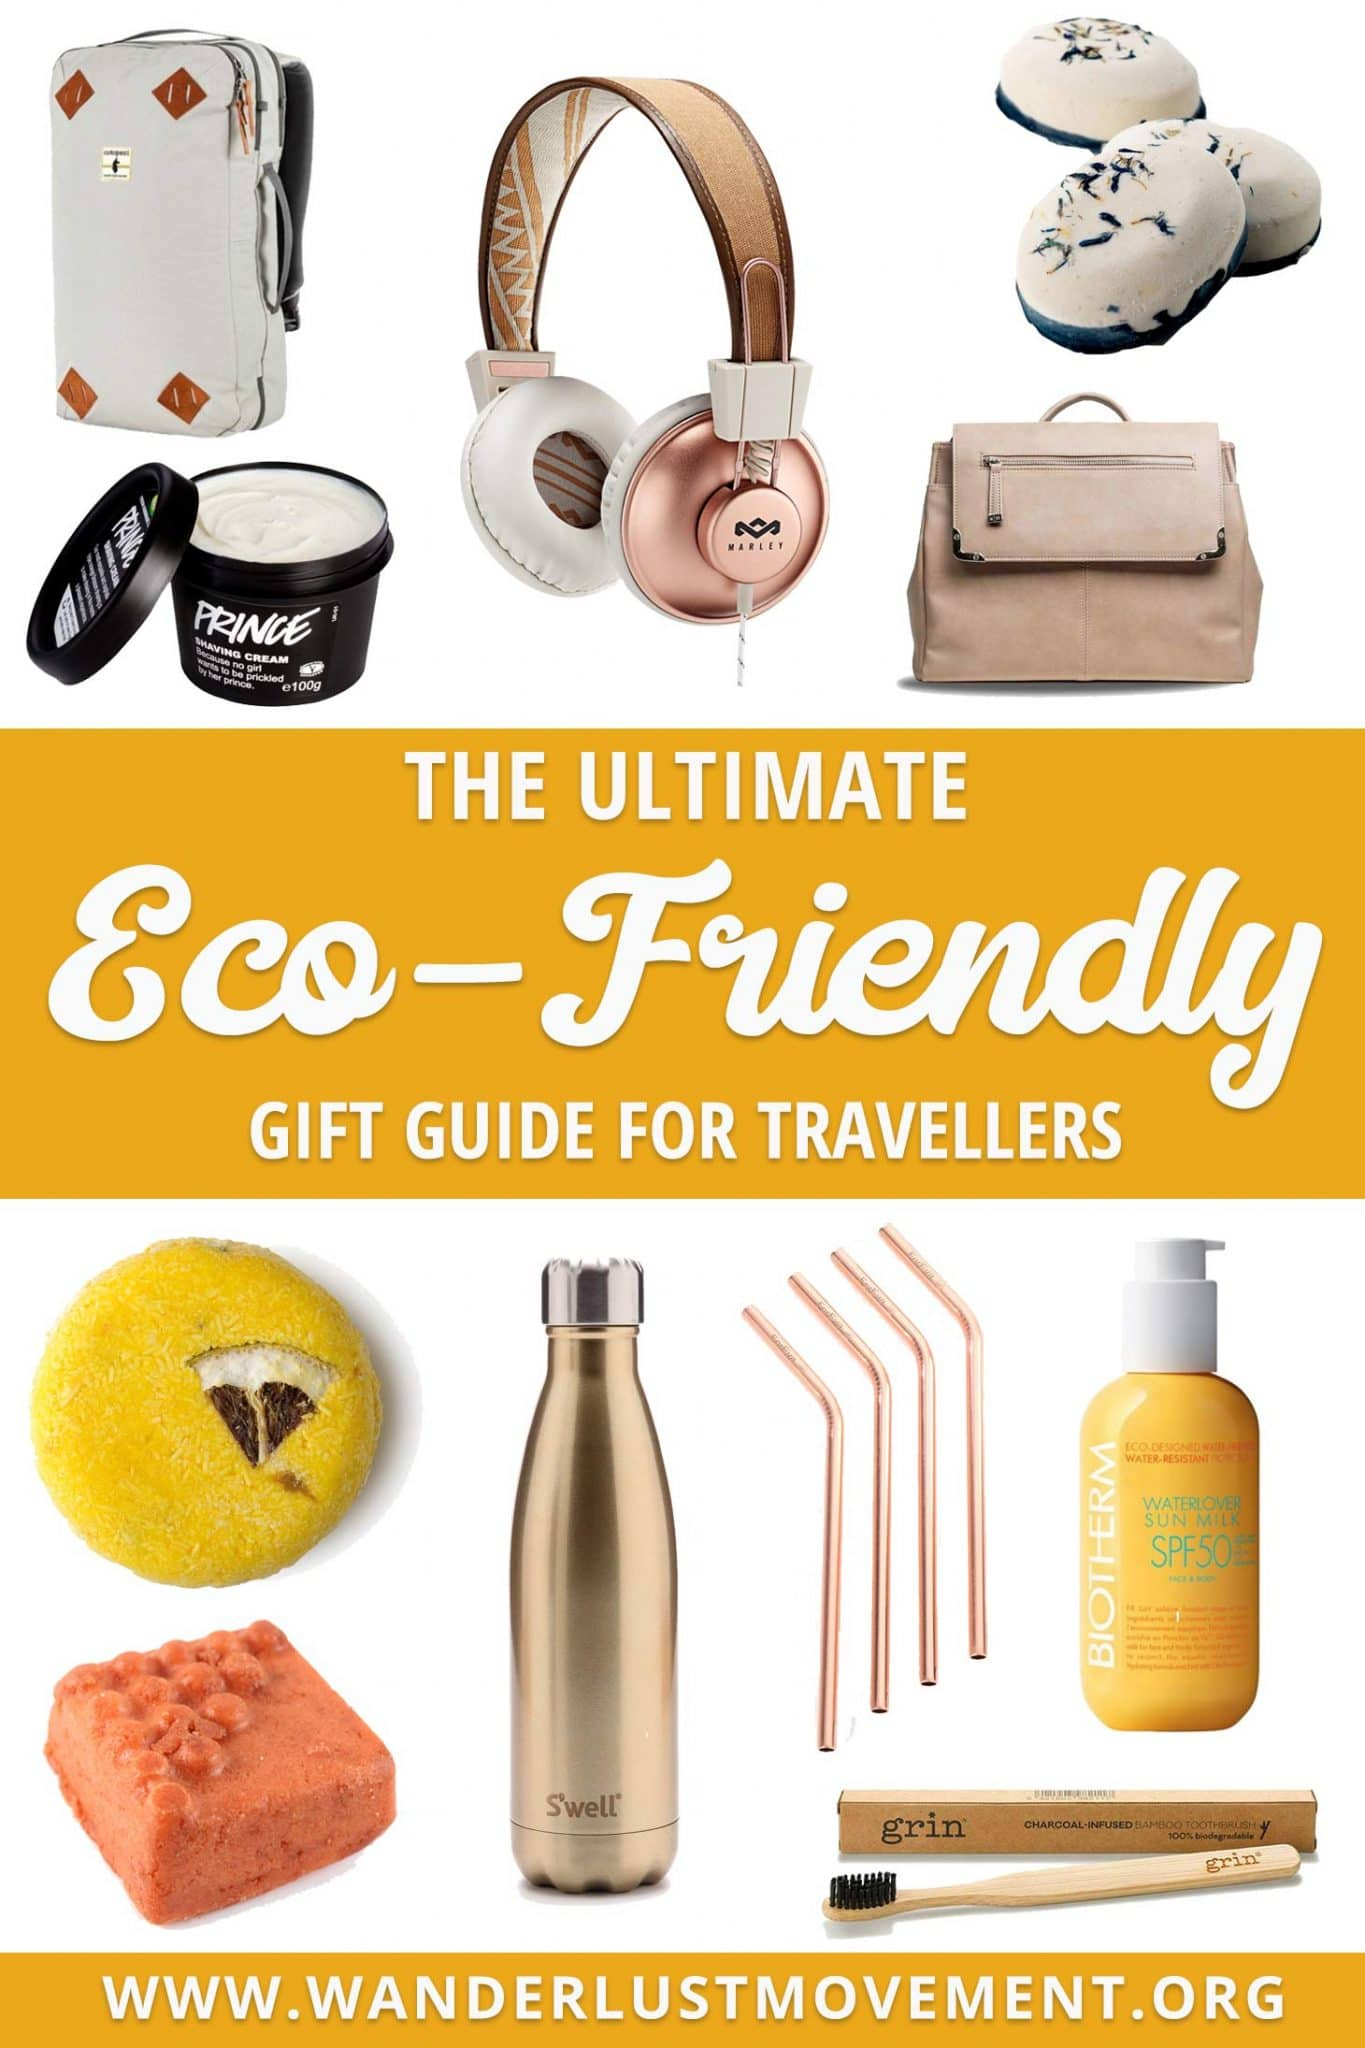 20 Eco-Friendly Gift Ideas for Travellers